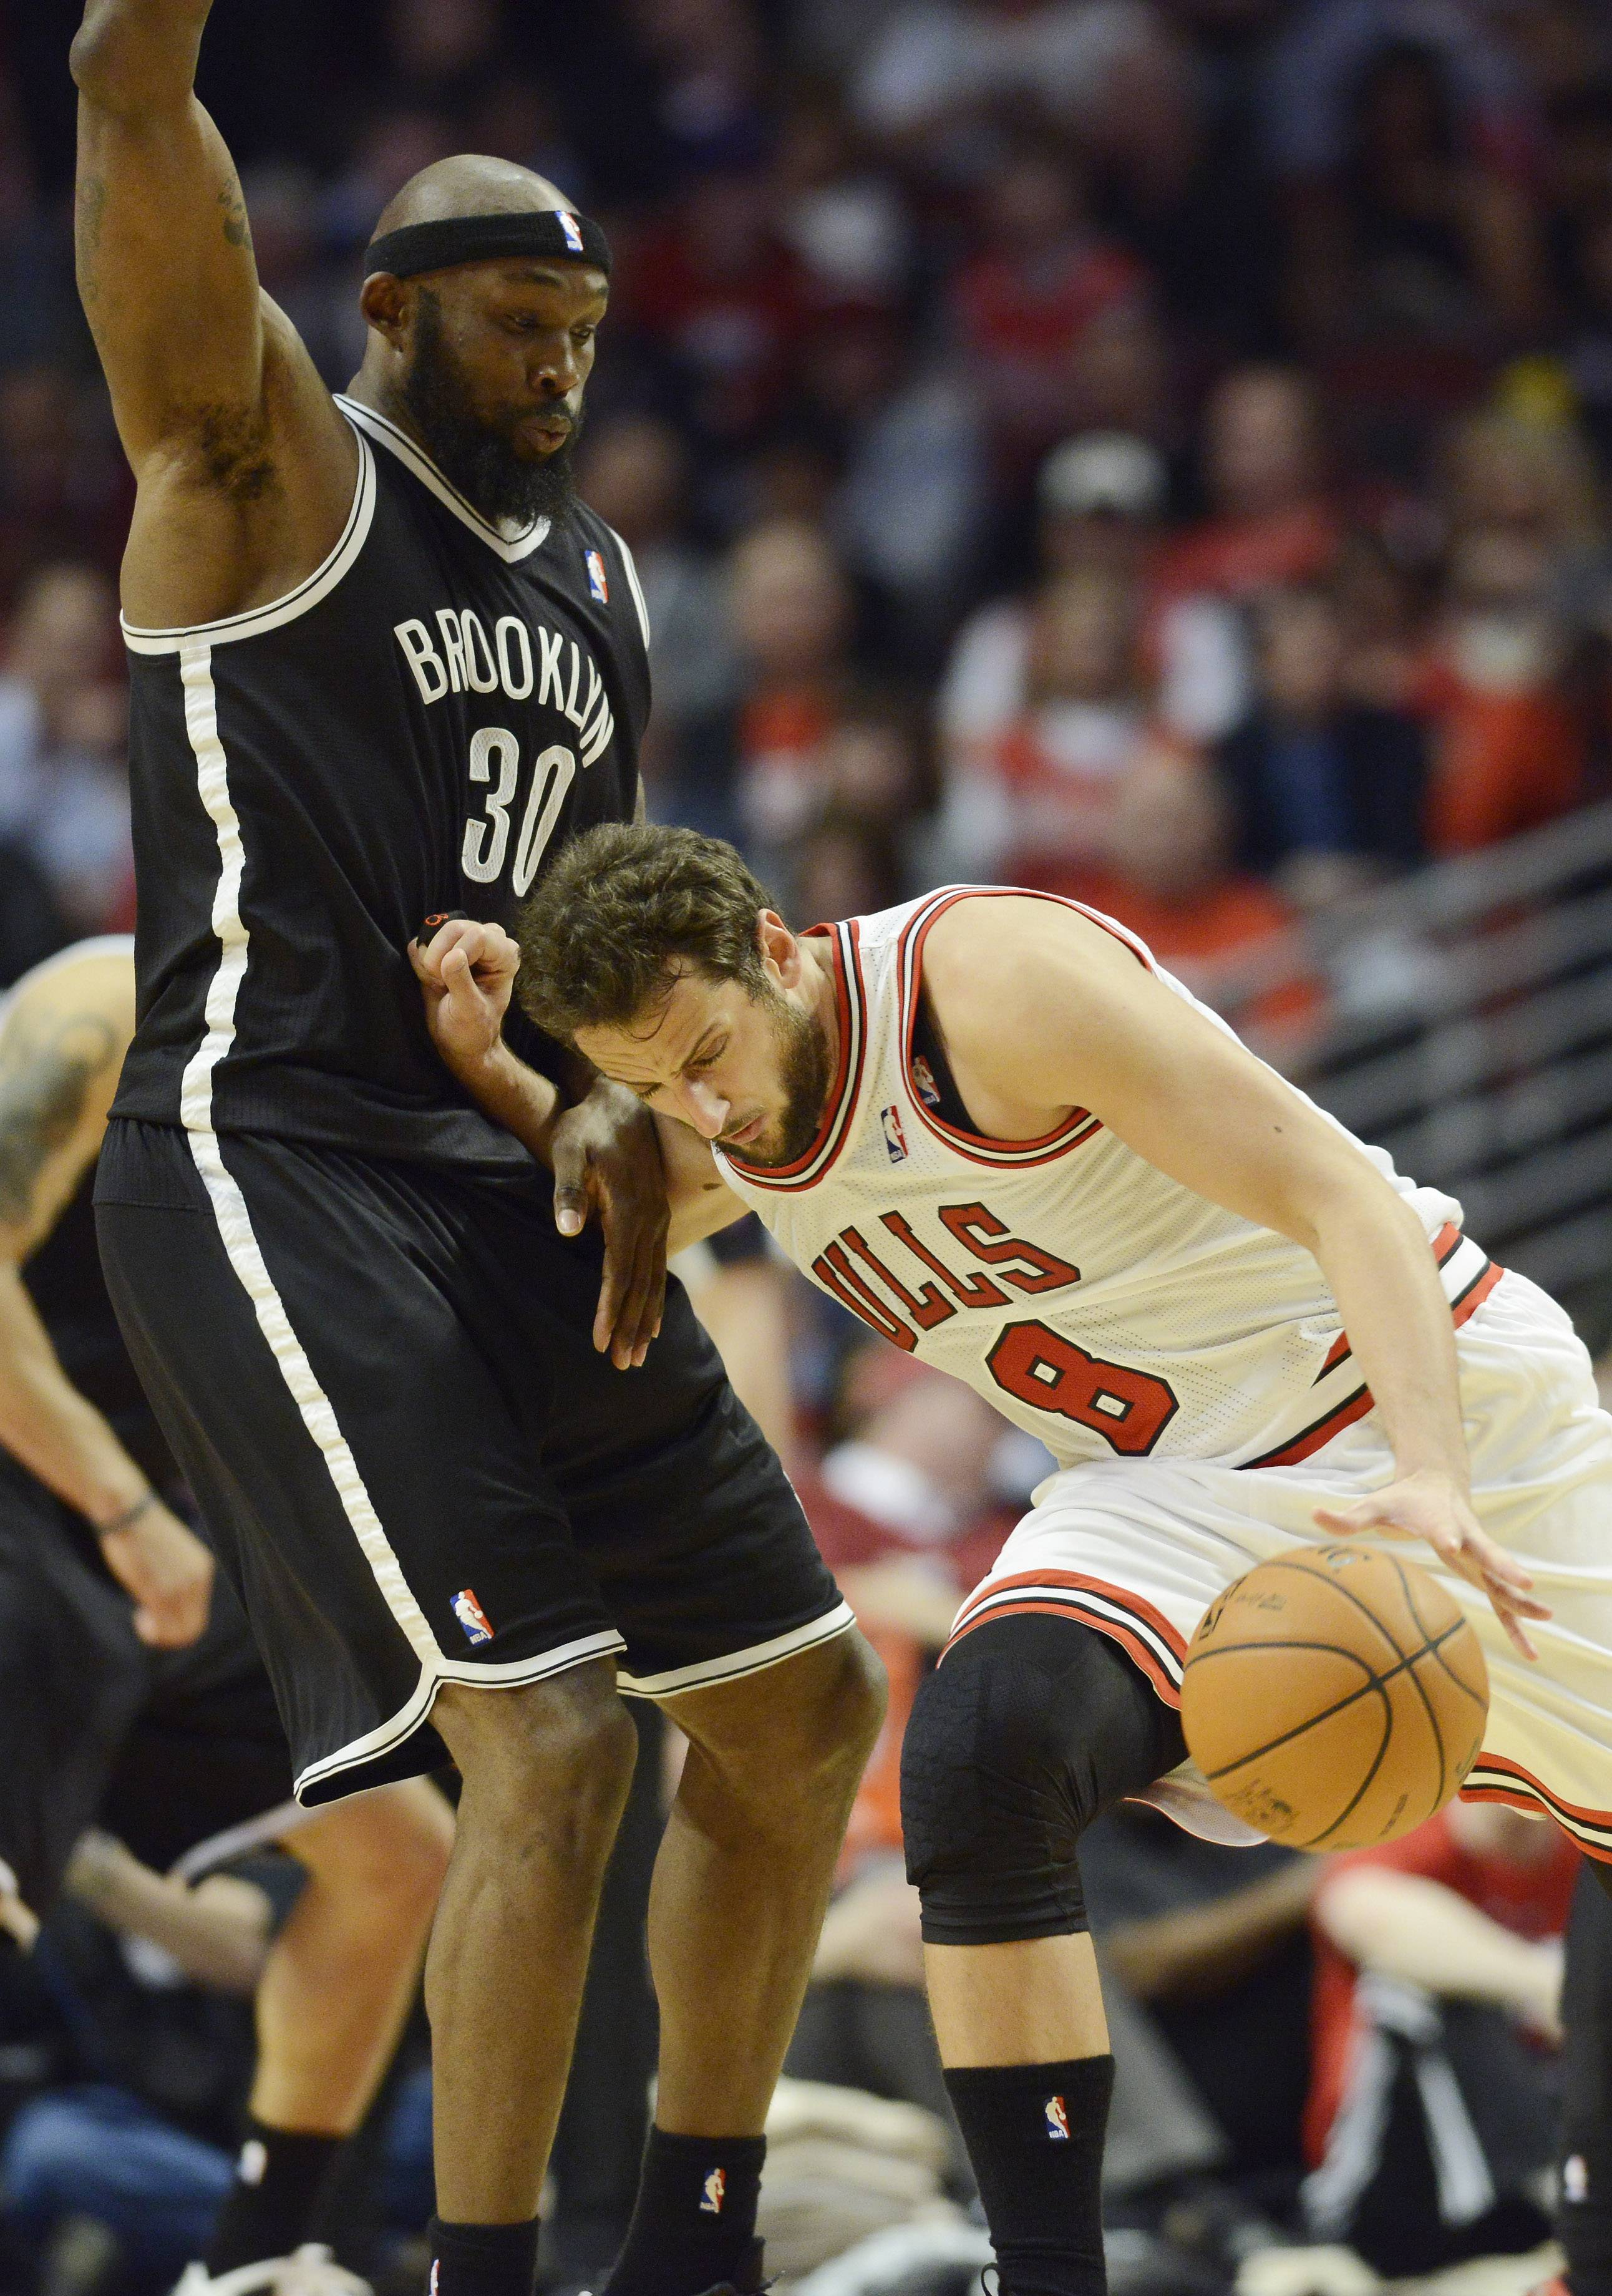 Marco Belinelli of the Chicago Bulls gets called for an offensive foul against Reggie Evans of the Brooklyn Nets in Game 6 of the first round playoff game at the United Center in Chicago, Thursday, May 2, 2013.